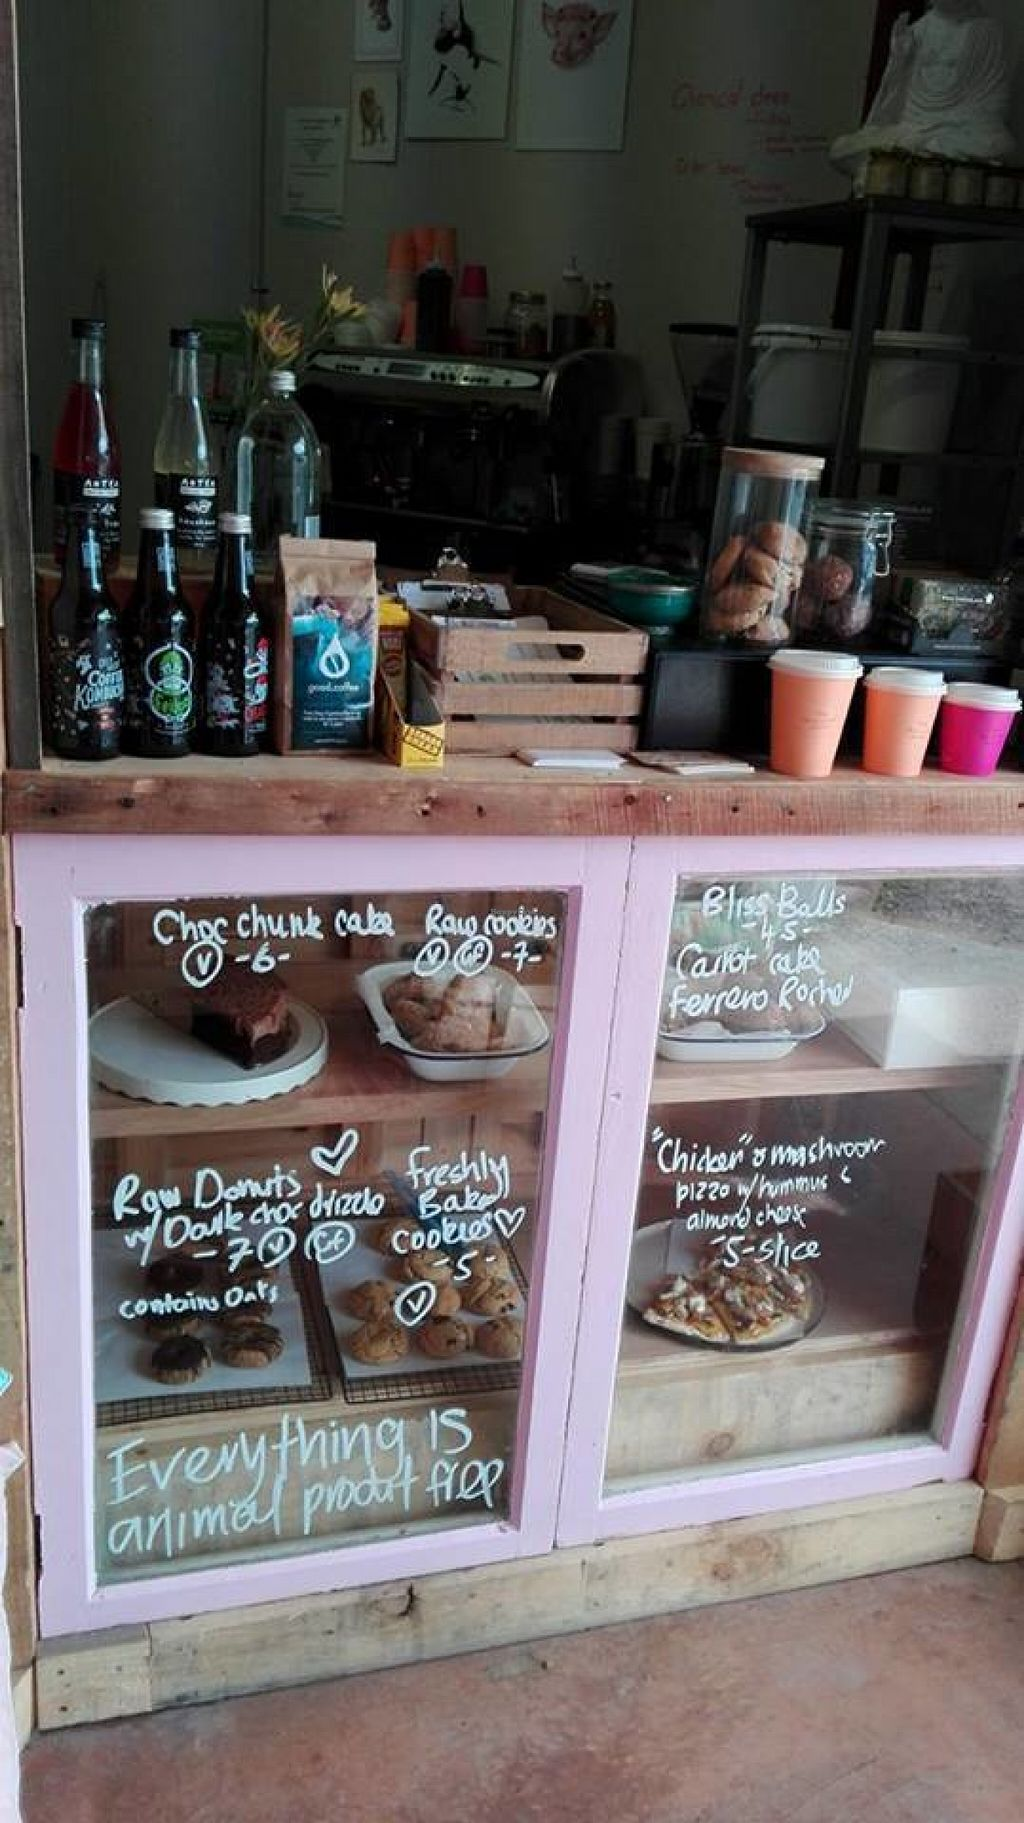 """Photo of The Nourished Eatery  by <a href=""""/members/profile/saneas"""">saneas</a> <br/>More choice <br/> July 19, 2016  - <a href='/contact/abuse/image/75928/160823'>Report</a>"""